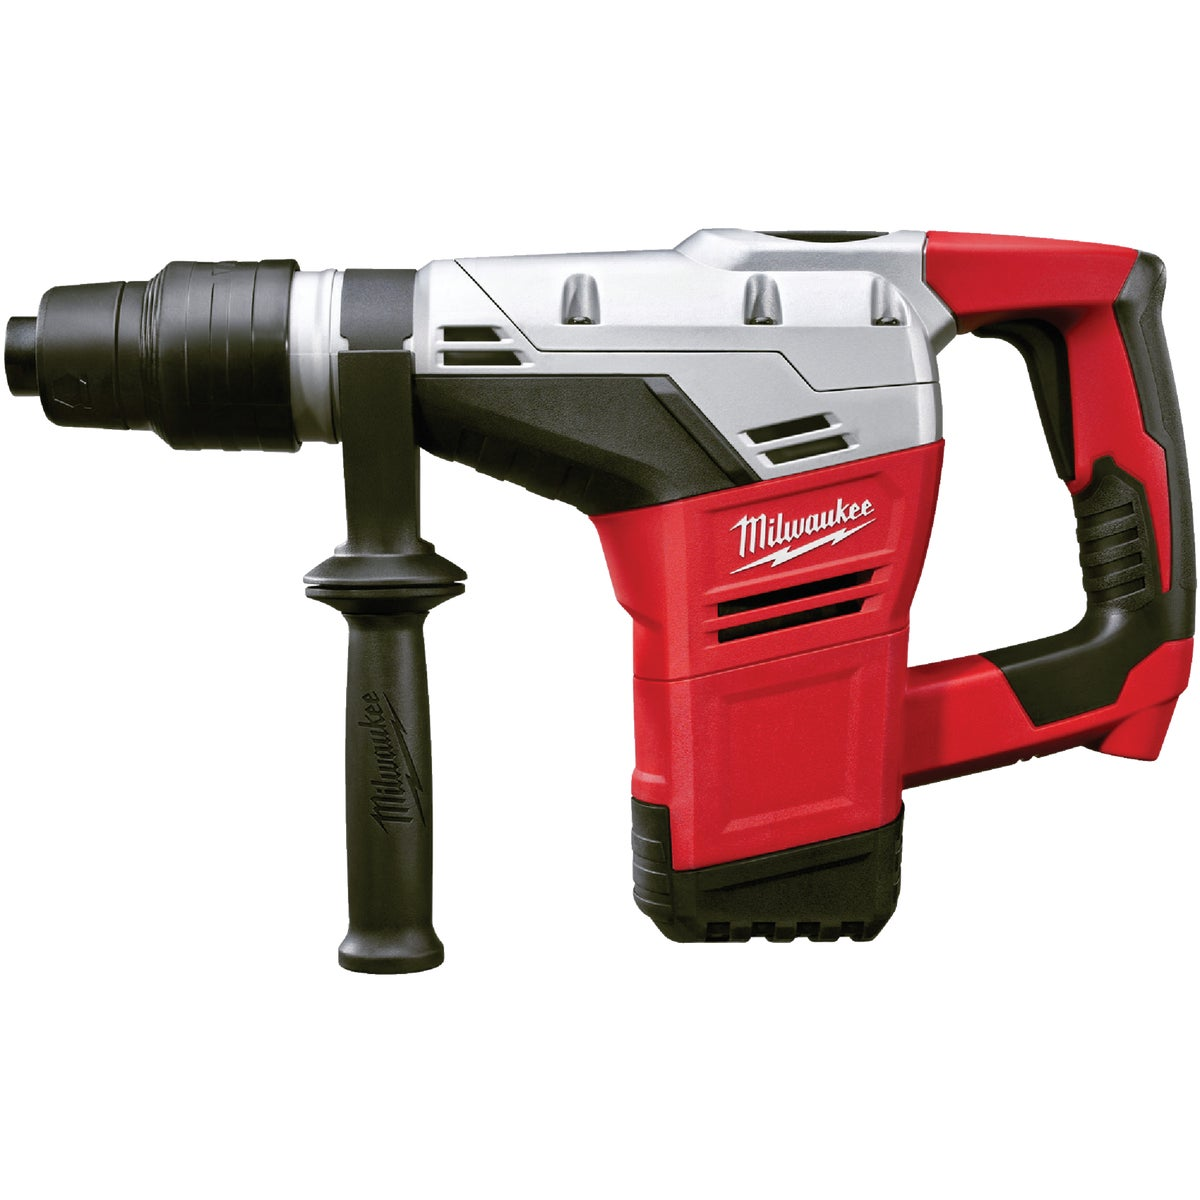 "1-9/16""SPL HAMMER DRILL - 5316-21 by Milwaukee Elec Tool"